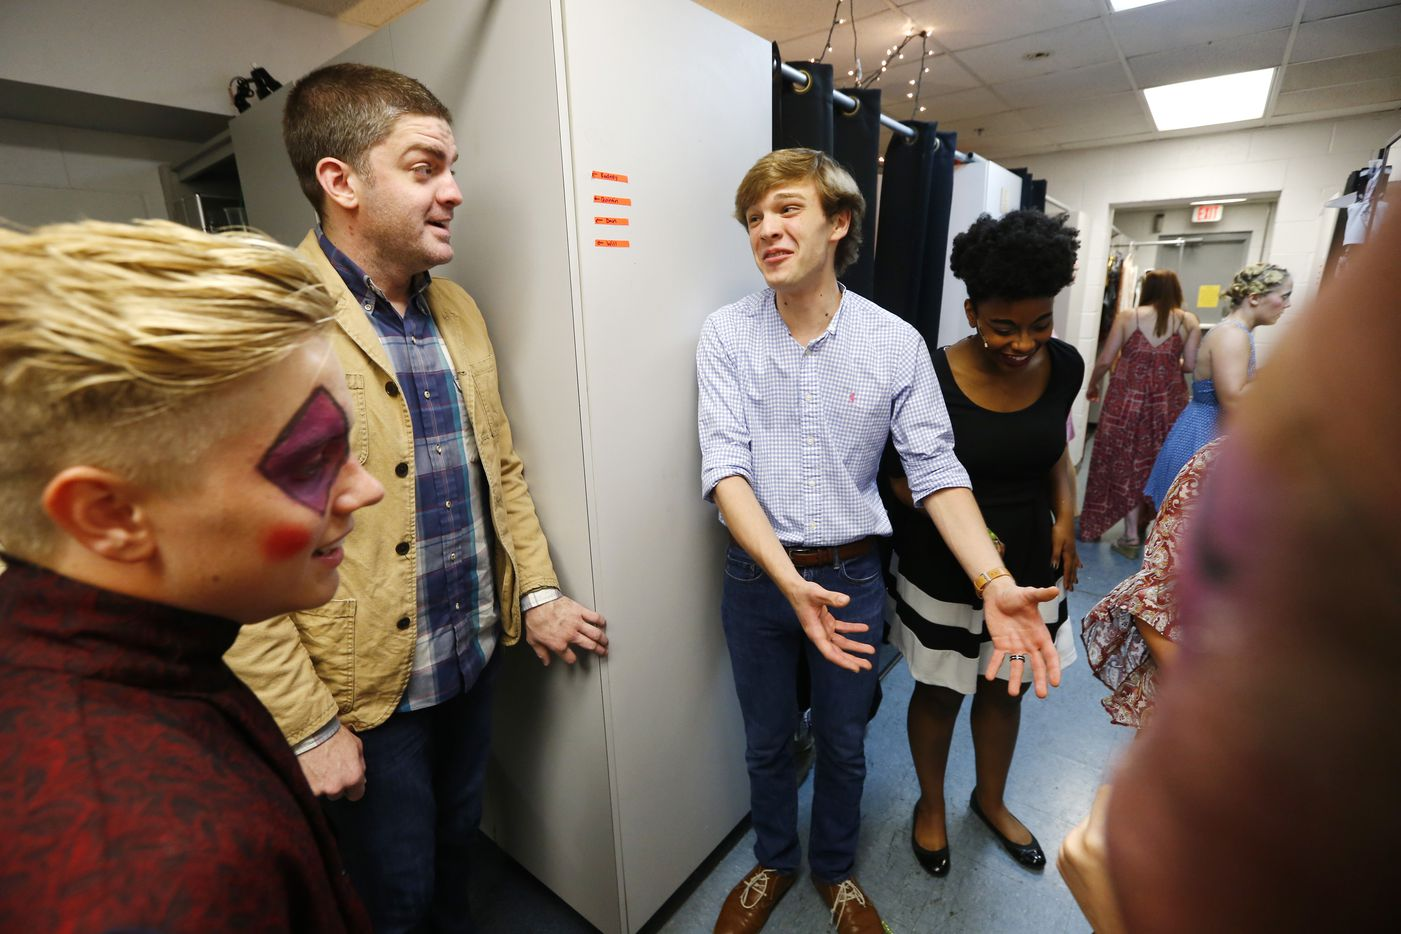 Director Derek Whitener (left, in jacket) talks to Will Carleton, who plays the lead, before opening night of Pippin at The Firehouse Theatre.